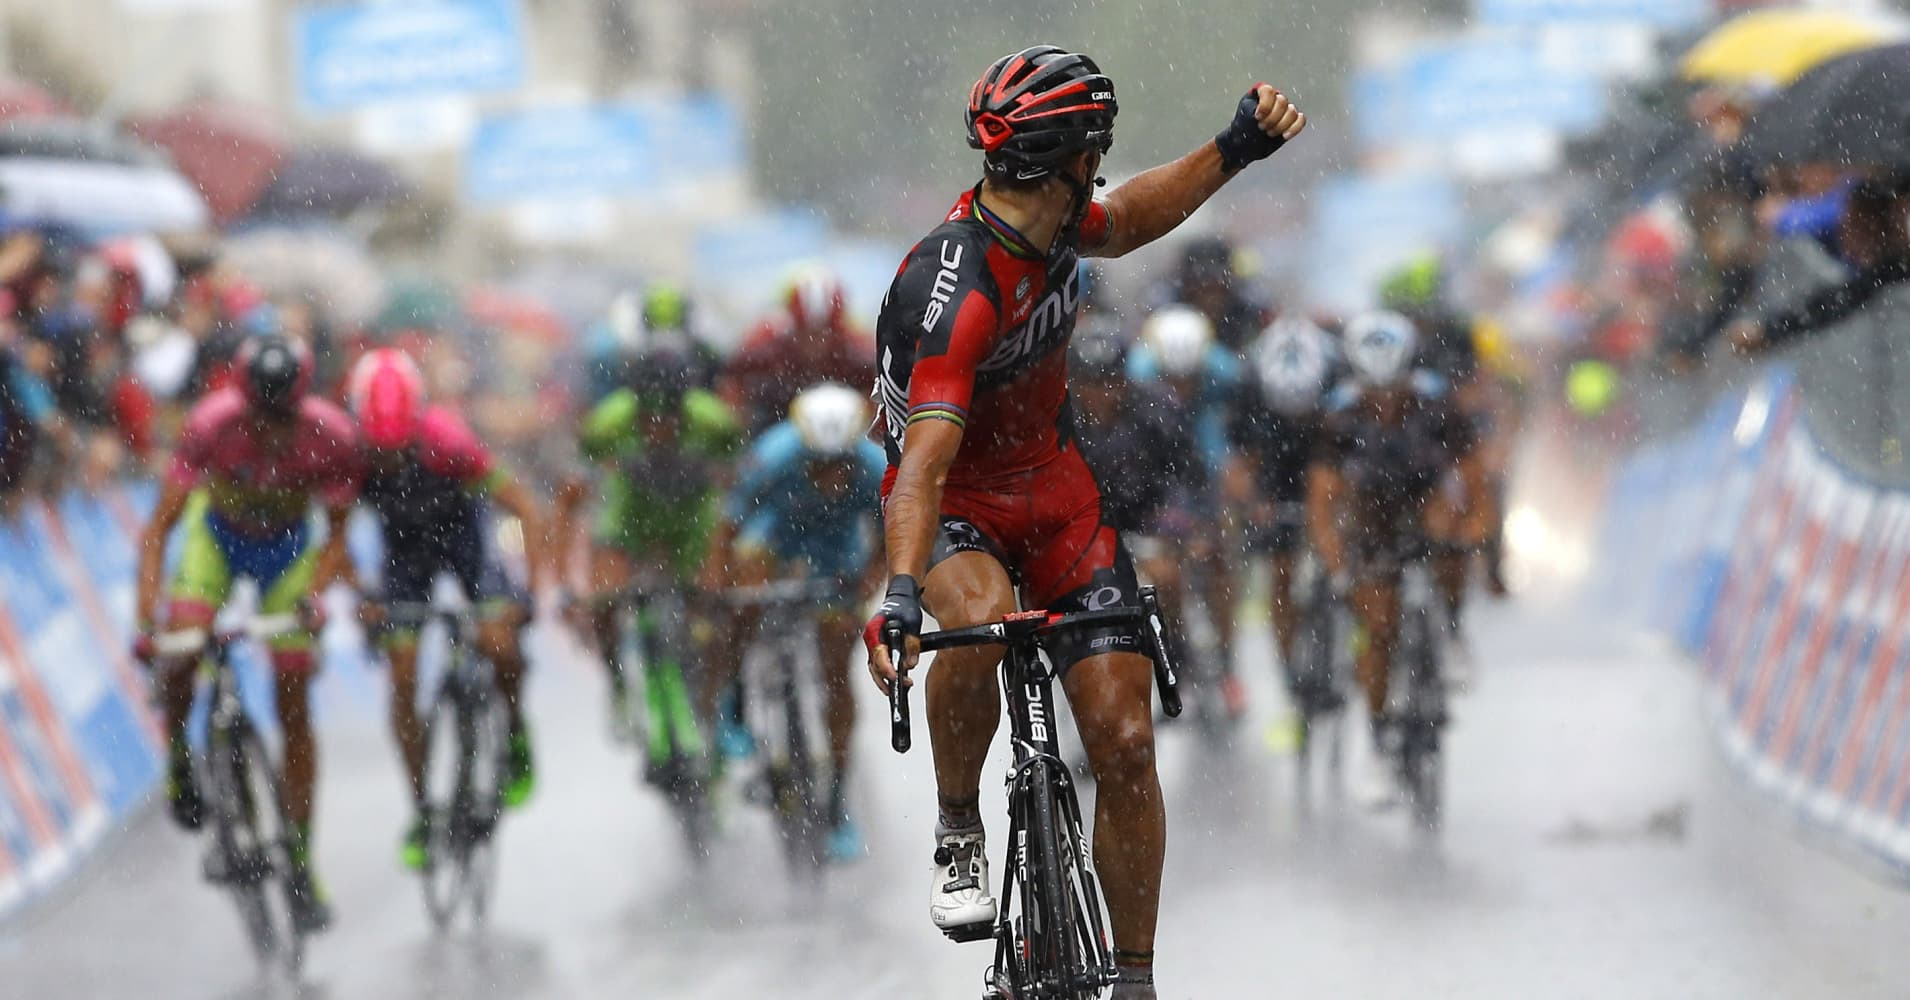 Belgian Philippe Gilbert of the BMC team celebrates as he crosses the finish line under heavy rain to win the 12th stage of the 98th Giro d'Italia, Tour of Italy, cycling race between Imola and Vicenza on May 21, 2015 in Vicenza.